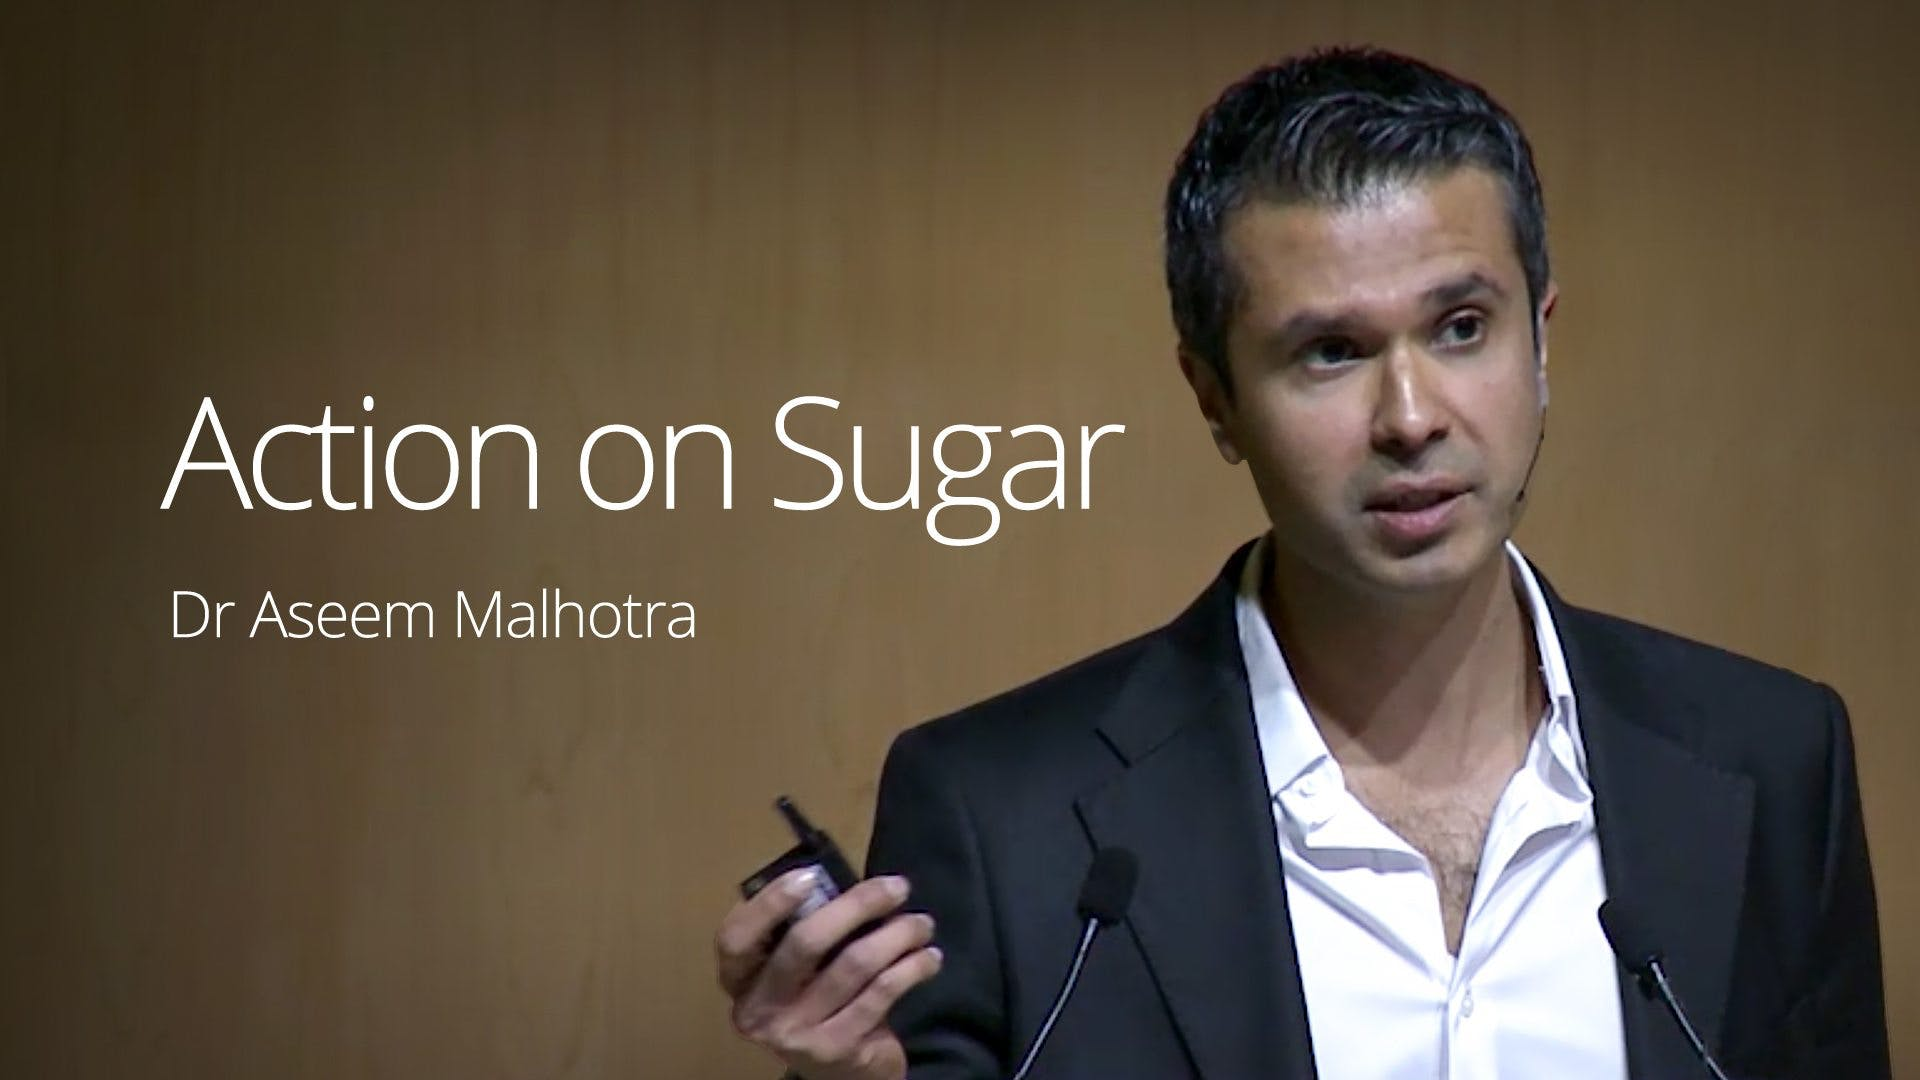 Dr. Aseem Malhotra - Action on Sugar (SA 2015)